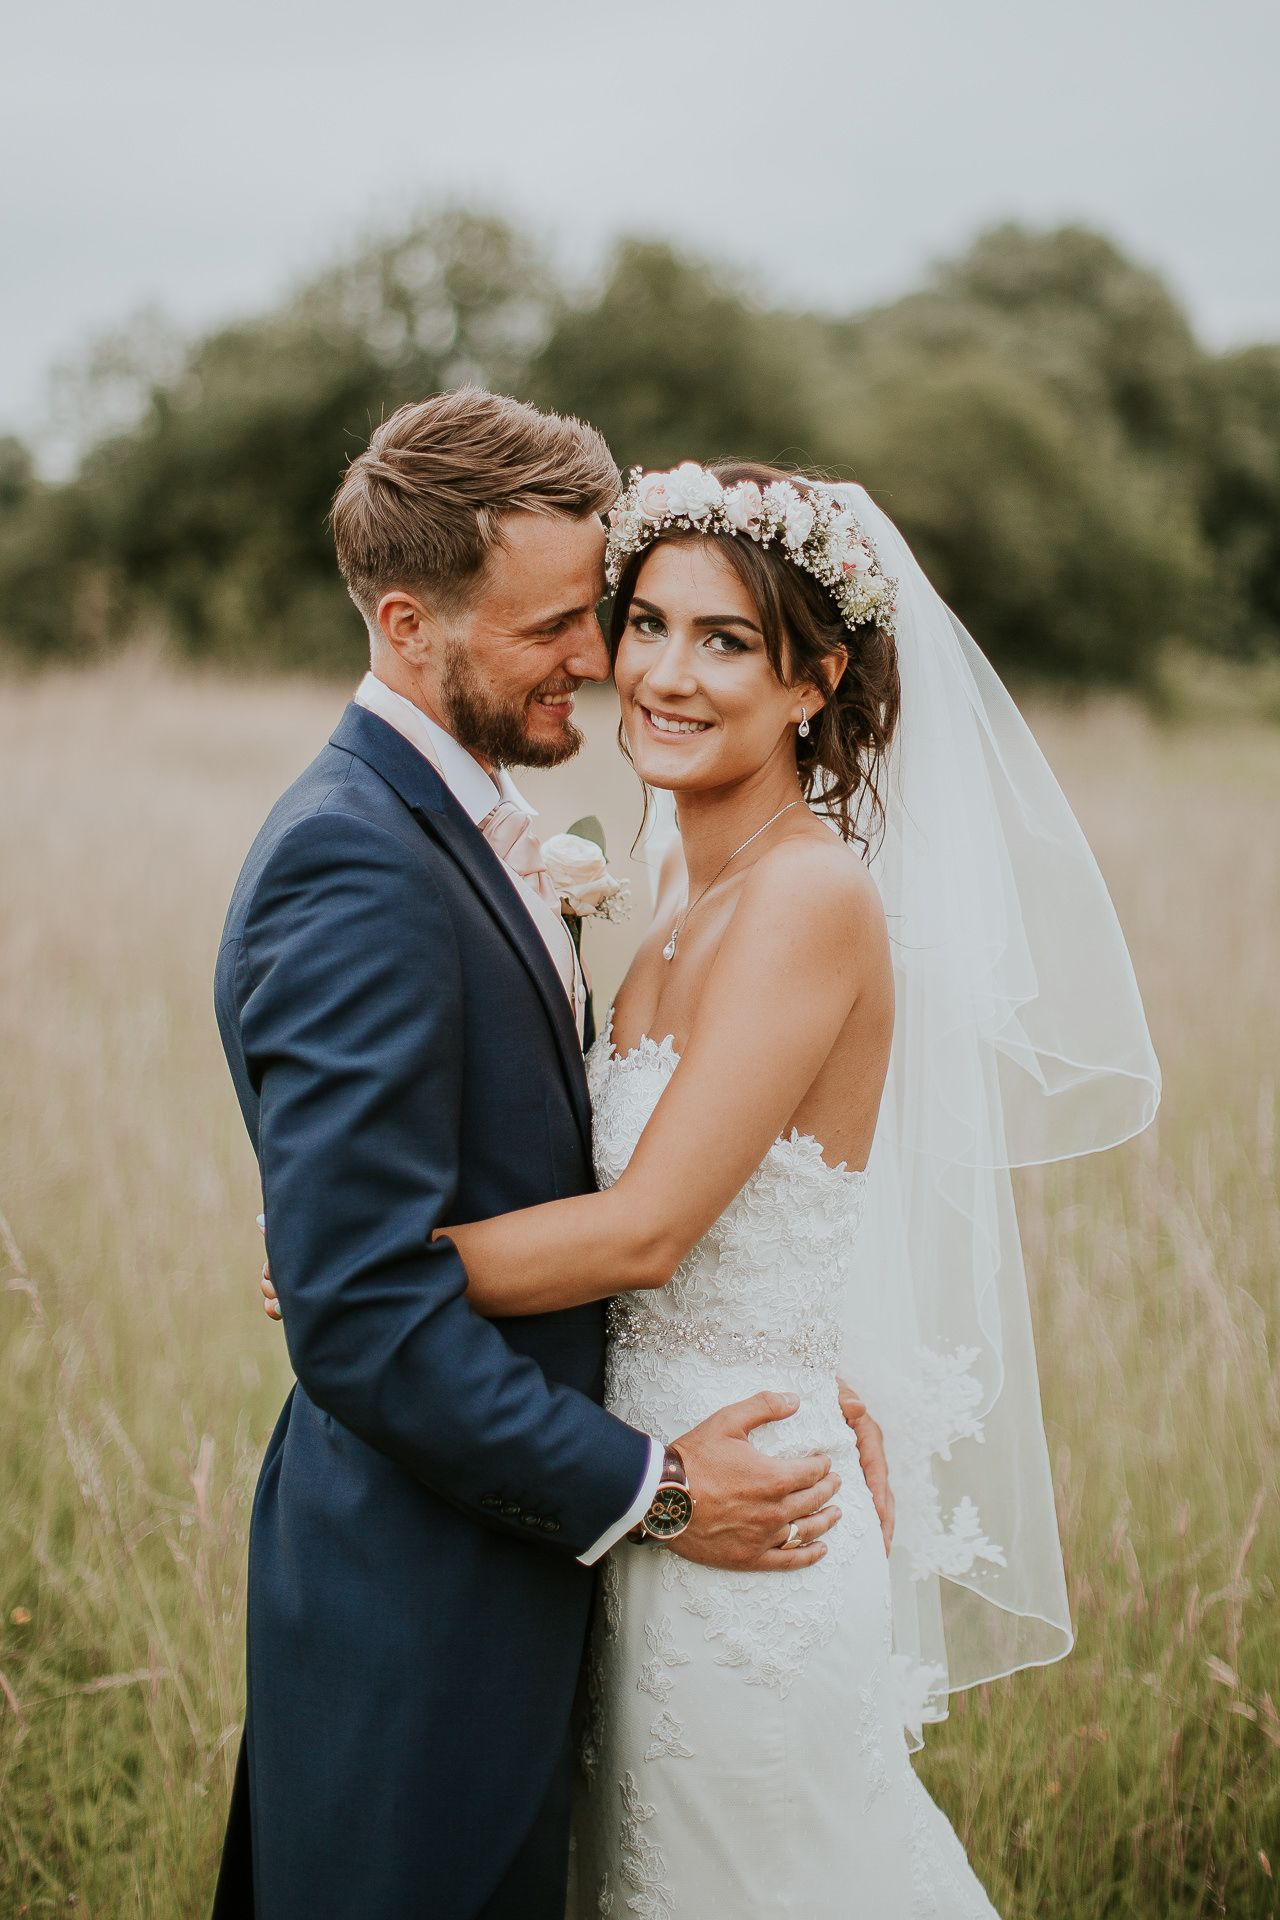 Harriet & Simon by D&A Photography, a Contemporary UK